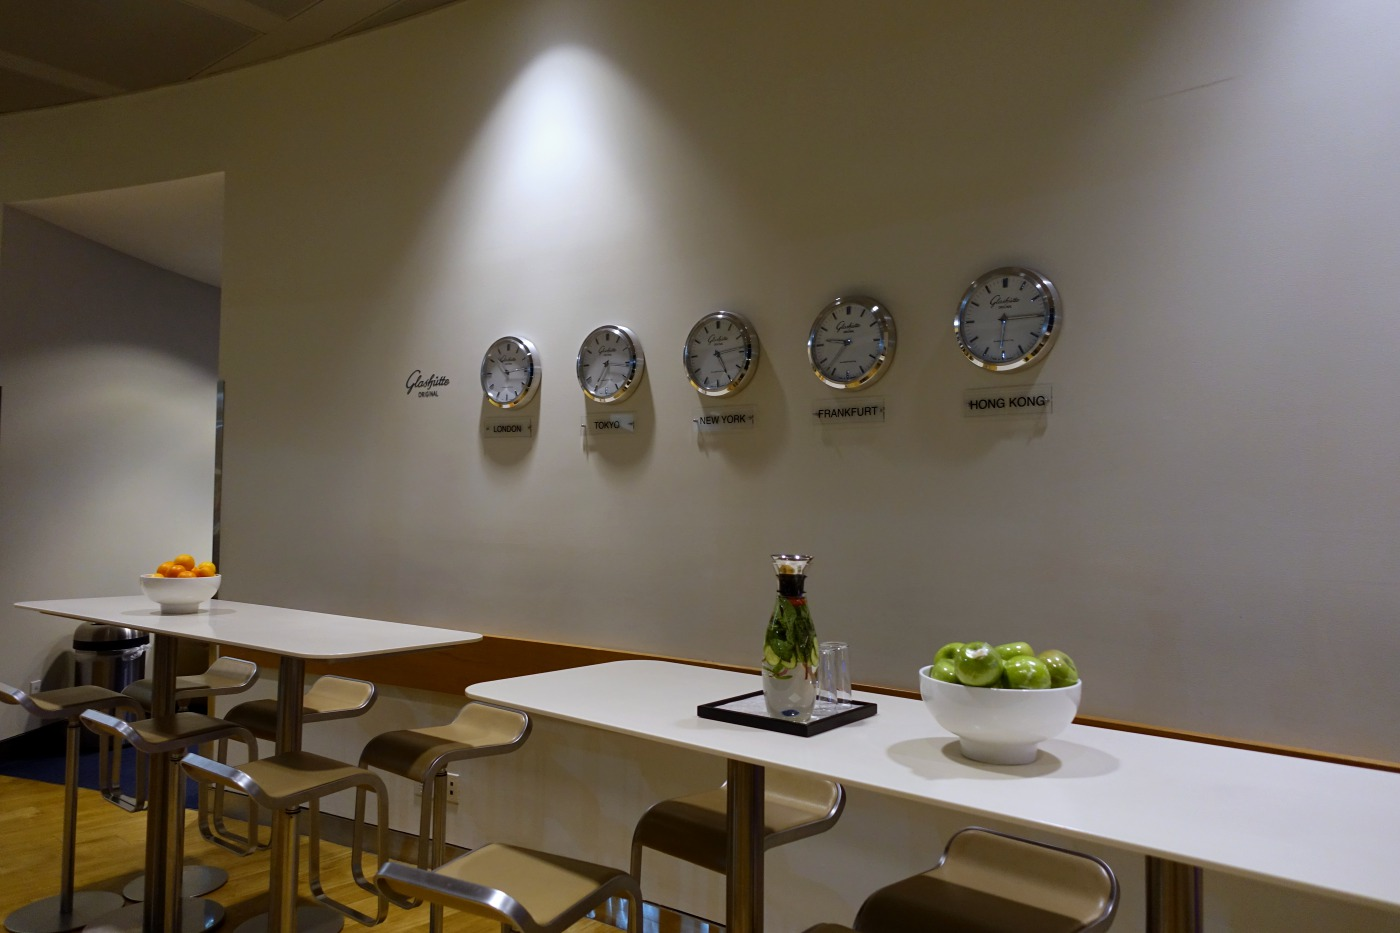 World Time Clocks, JFK Lufthansa Business Lounge Review